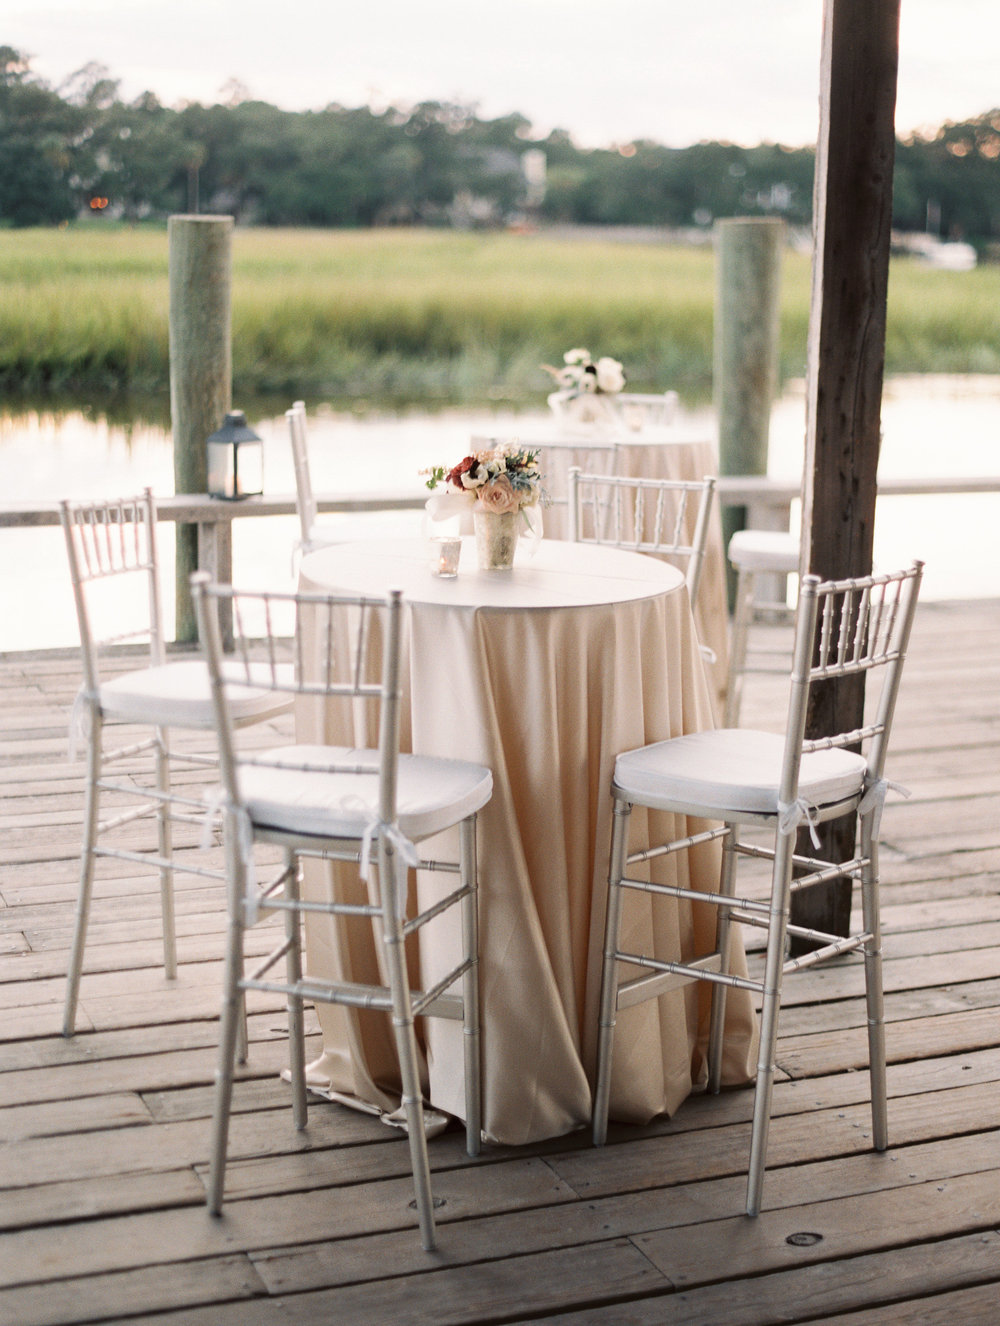 Outdoor wedding reception at Boone Hall Plantation's Cotton Dock  //  Wedding photography by Landon Jacob  //  A Lowcountry Wedding Magazine